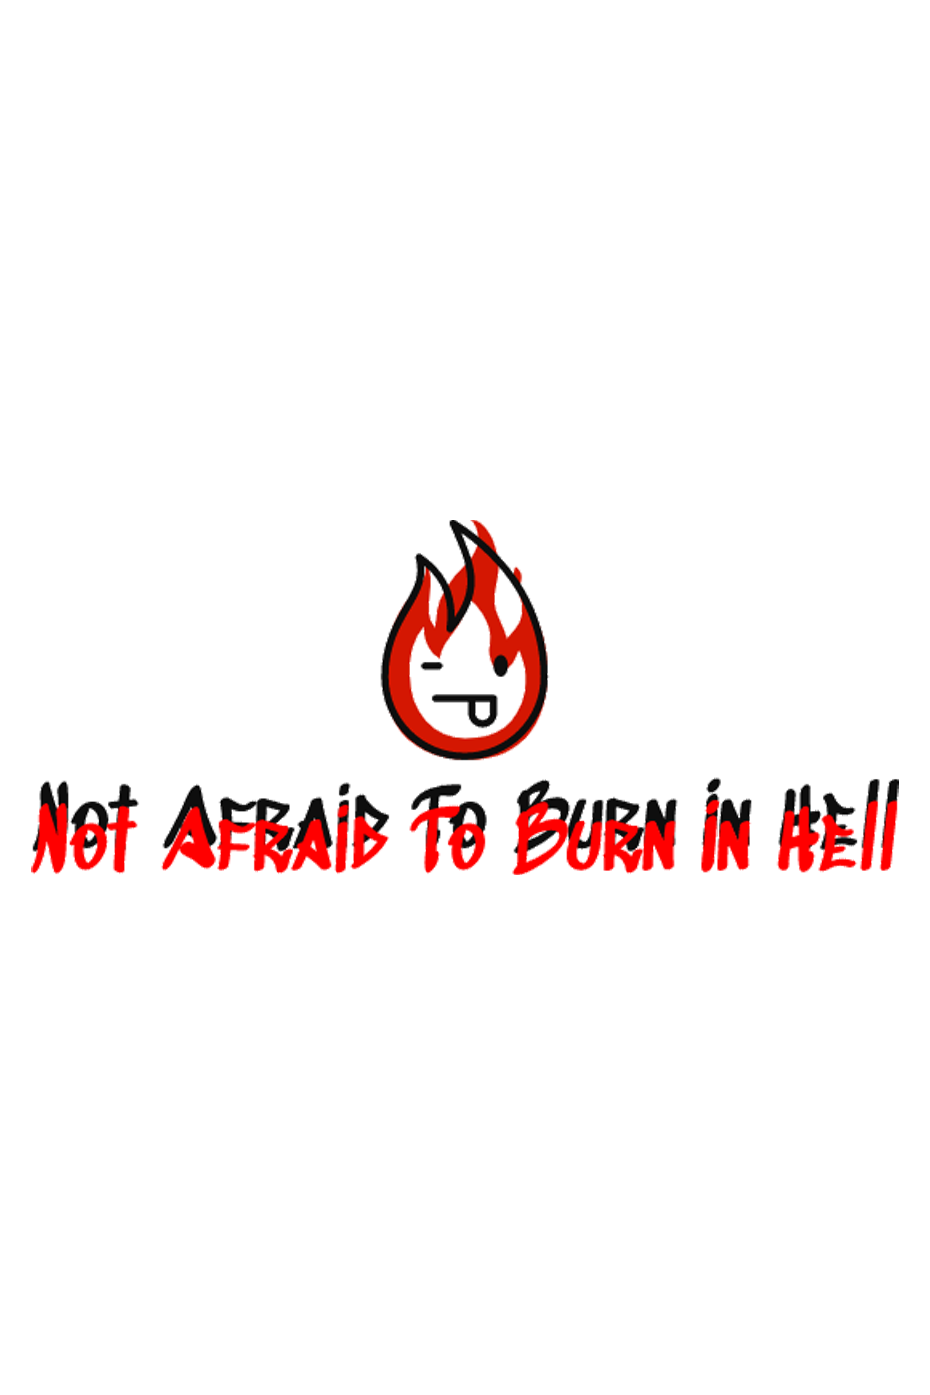 Not Afraid To Burn In Hell ;P by Elena Lea Hazzard